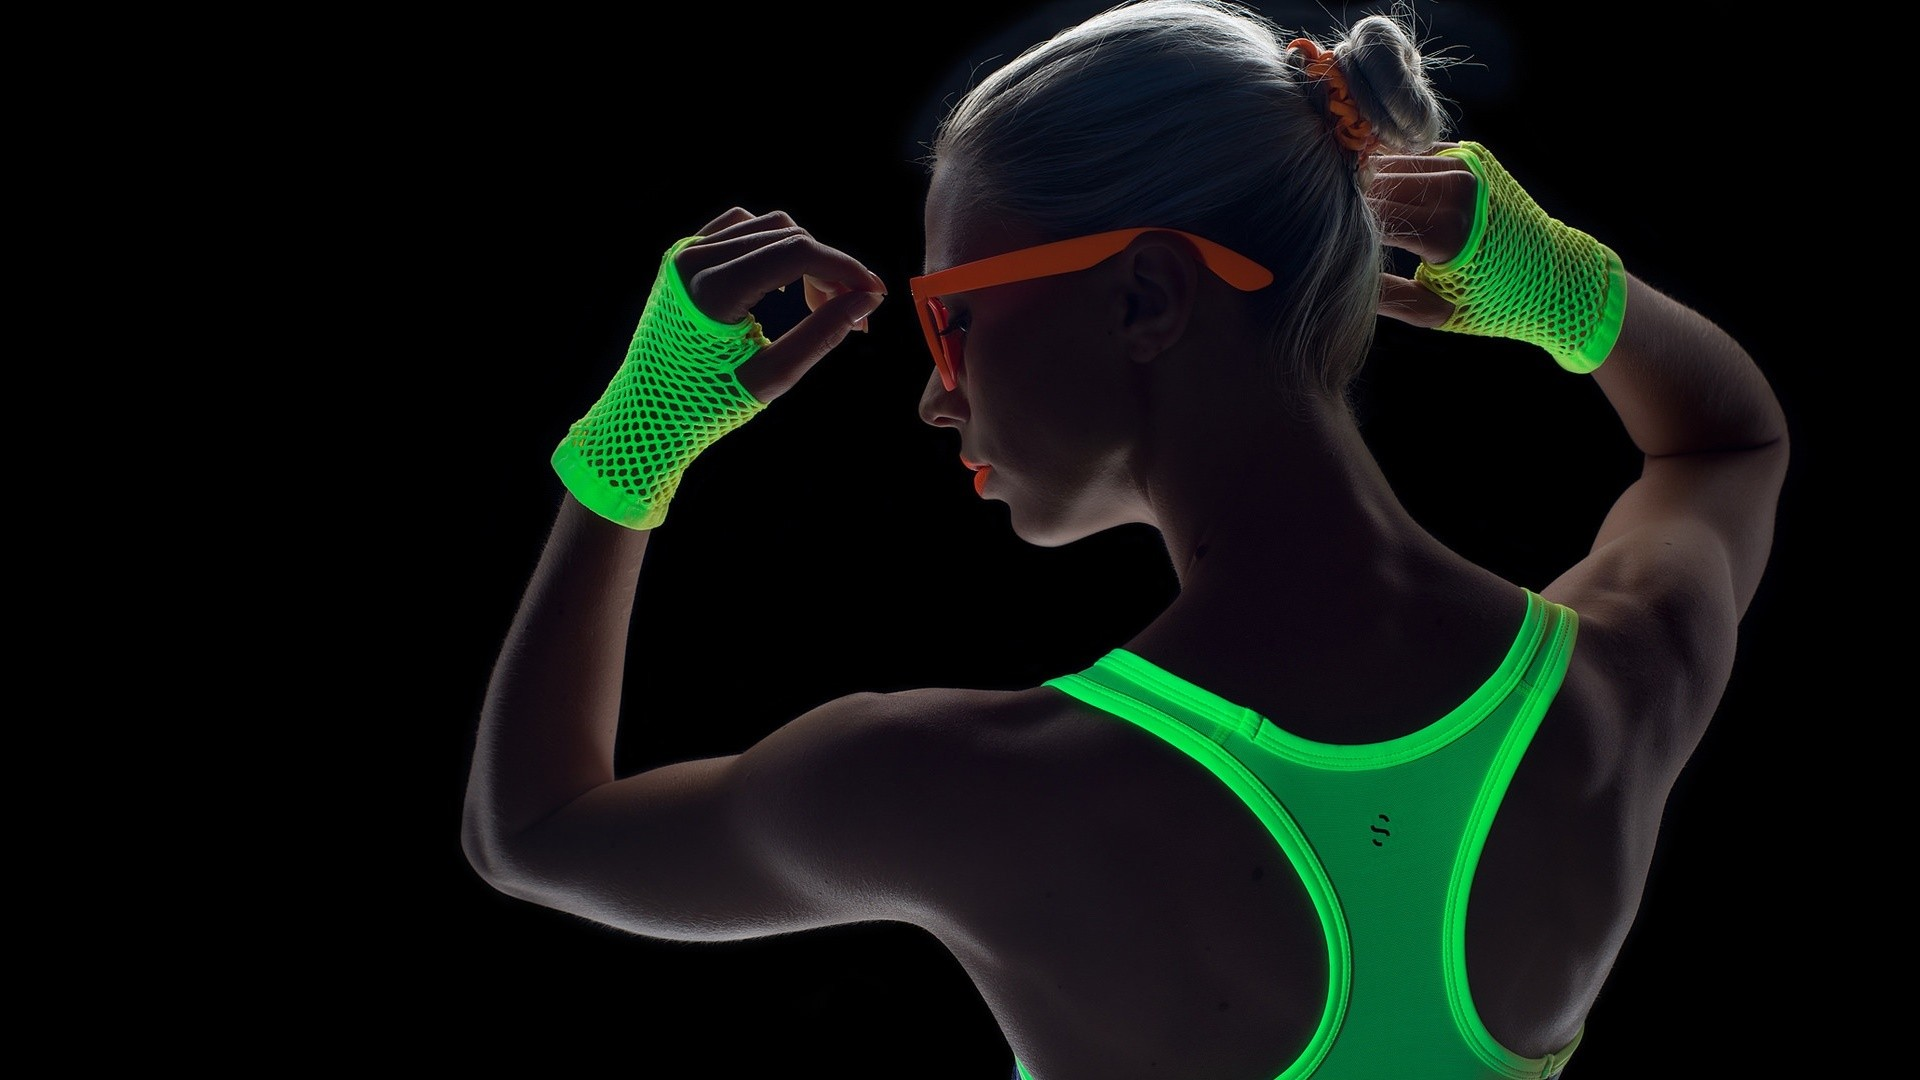 Neon light fitness wear